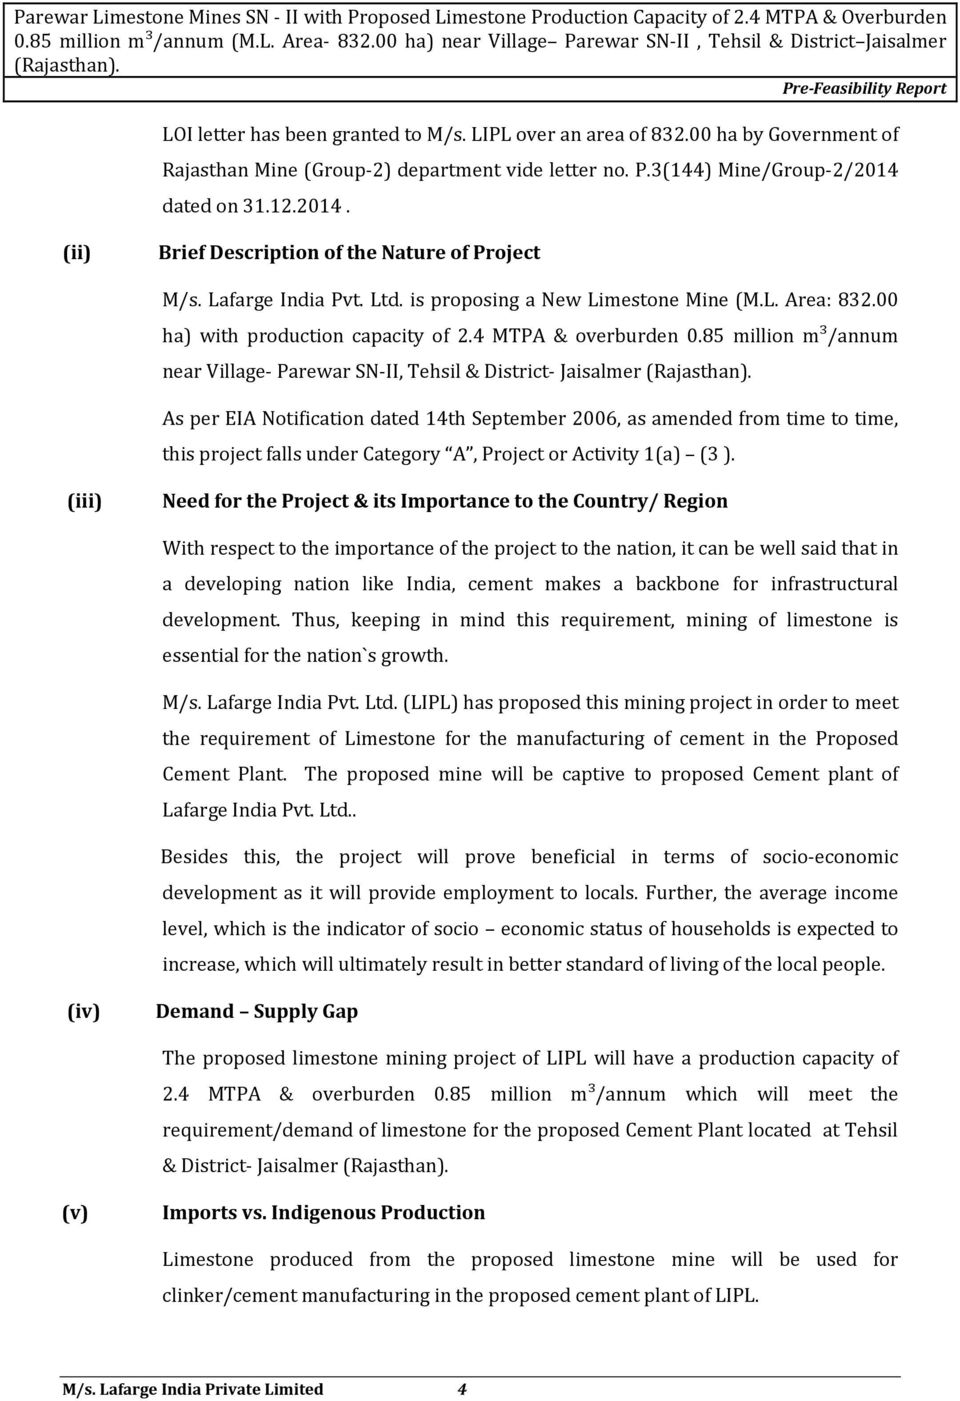 00 ha by Government of Rajasthan Mine (Group-2) department vide letter no. P.3(144) Mine/Group-2/2014 dated on 31.12.2014. (ii) Brief Description of the Nature of Project M/s. Lafarge India Pvt. Ltd.